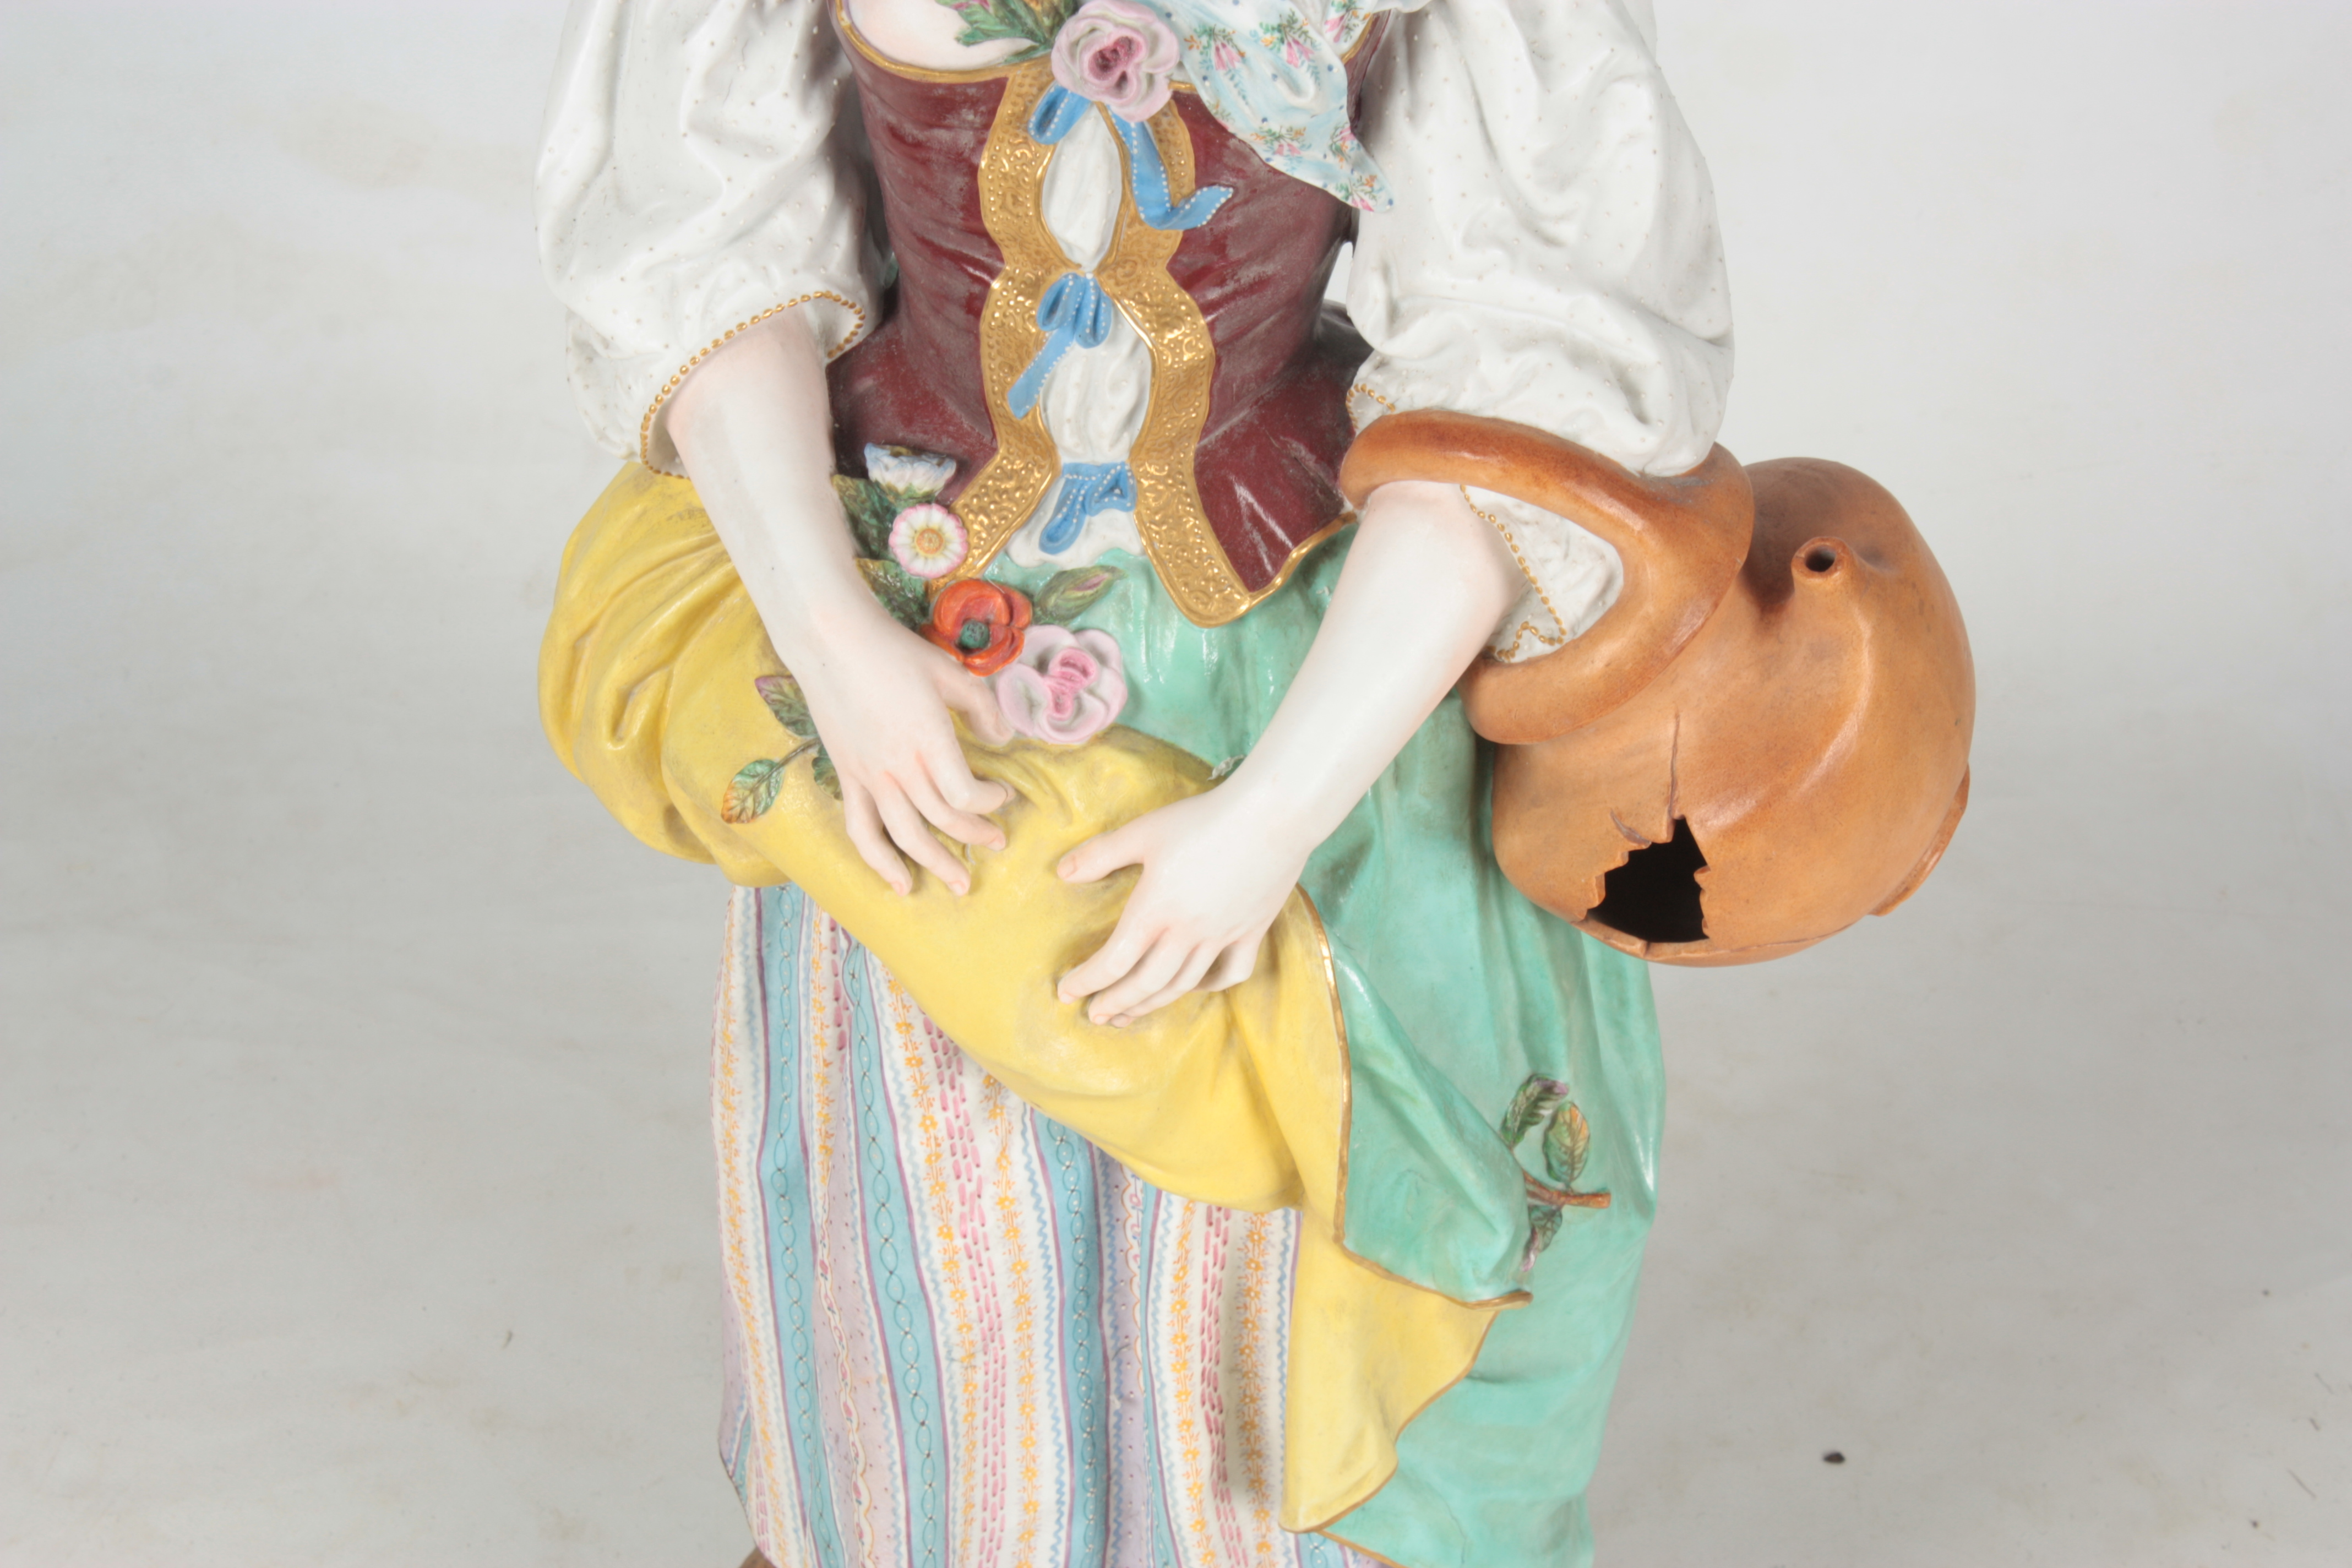 A 19TH CENTURY MASSIVE CONTINENTAL POLYCHROME STANDING BISQUE FIGURE OF A YOUNG LADY on a - Image 3 of 4